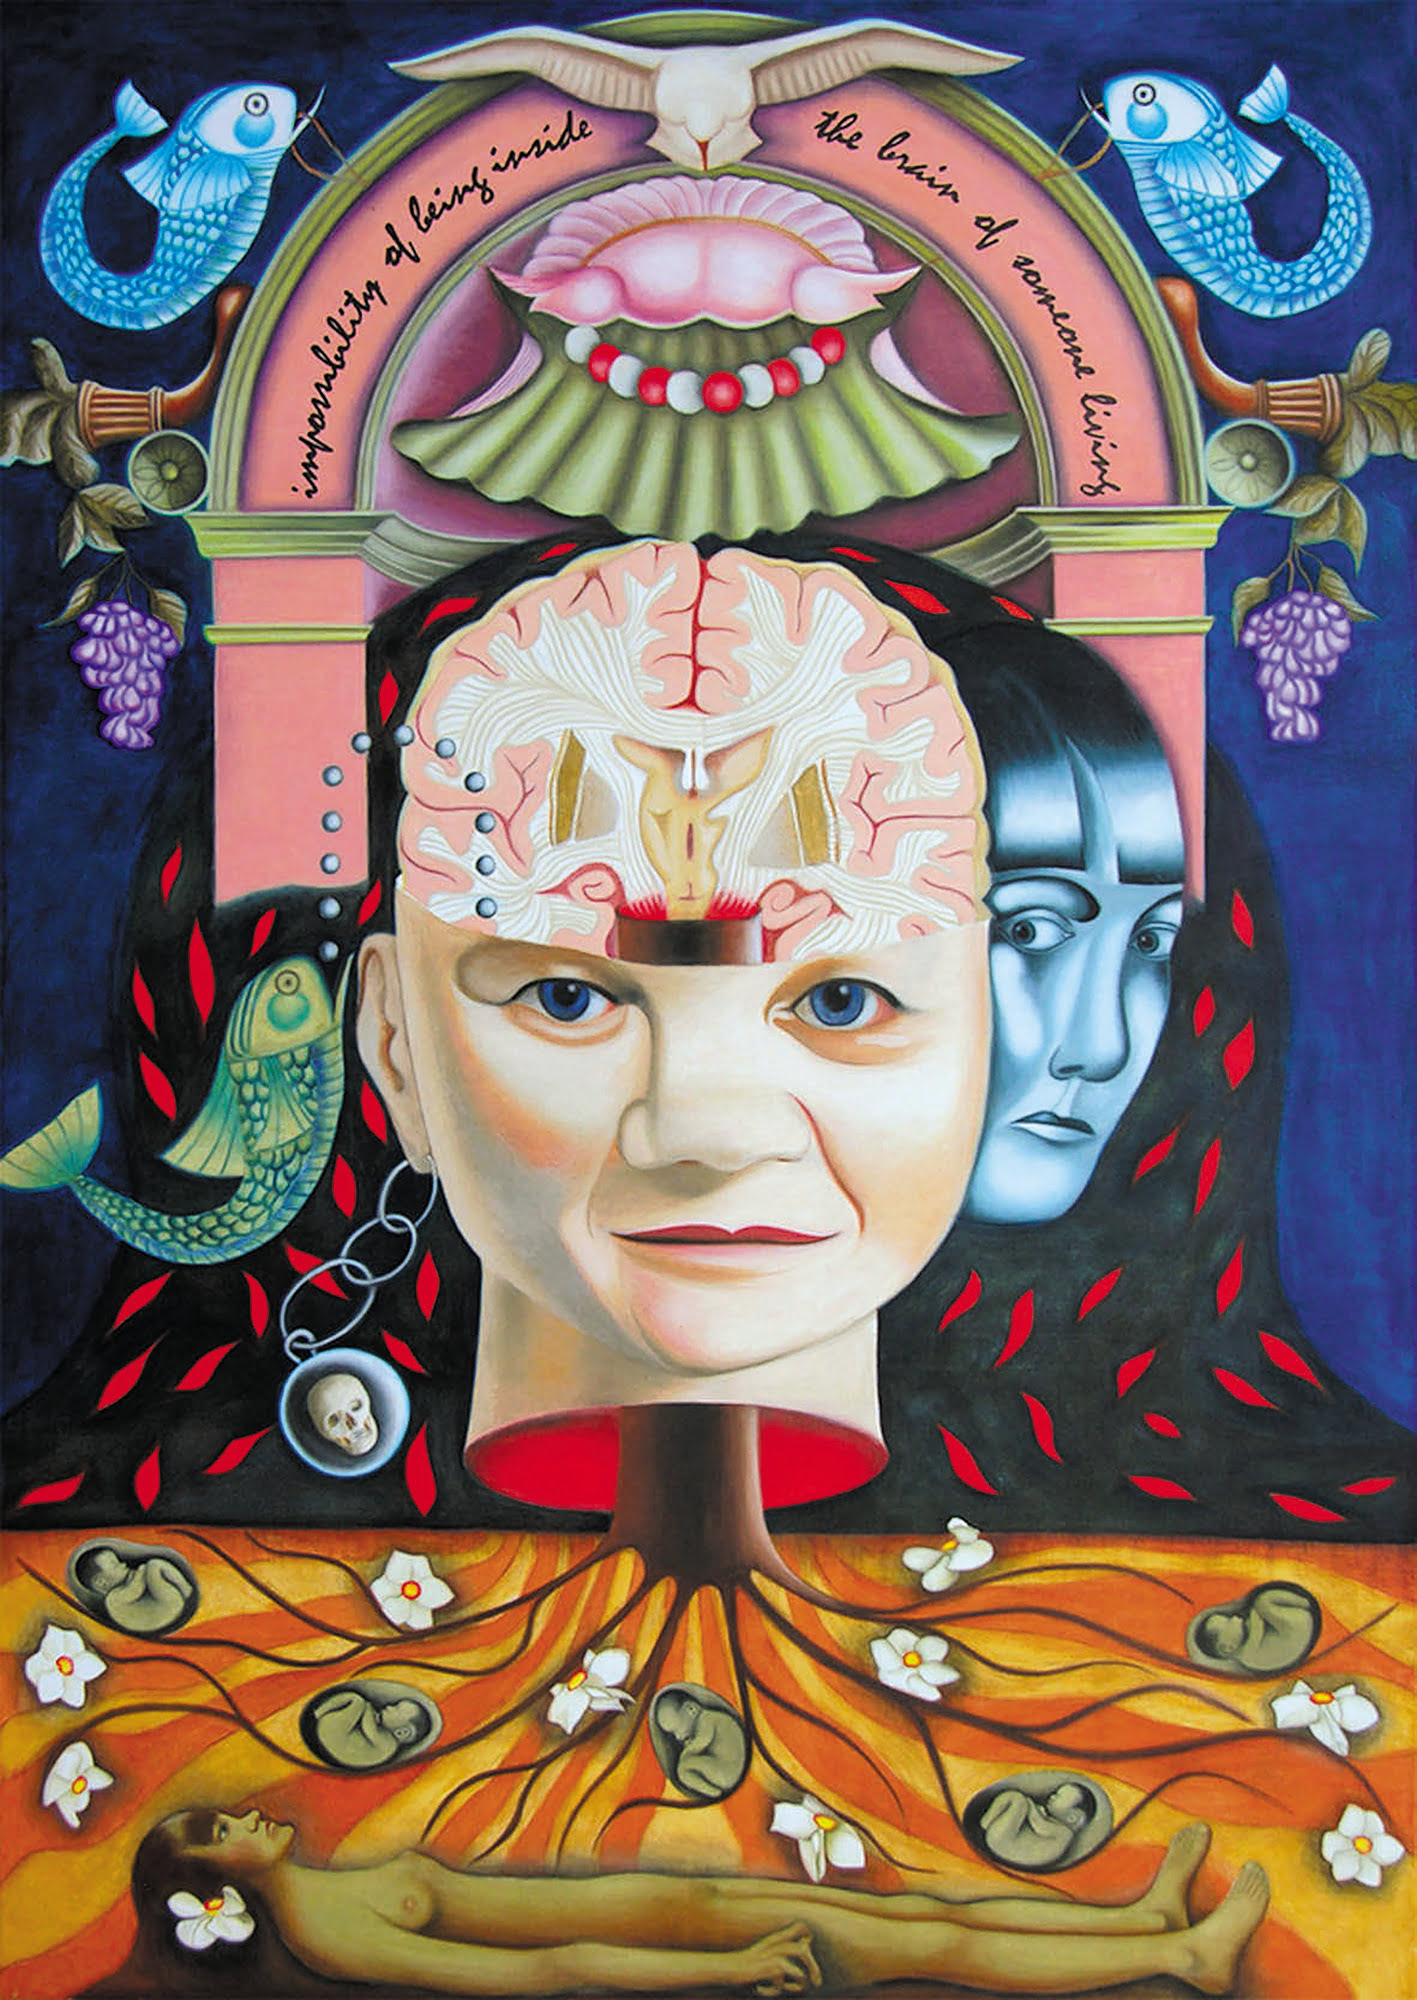 """A brightly coloured portrait painting containing intricate imagery of foetuses, roots, and fish. In the centre is a detached head rooted into the ground below. Above the head sits a pink arch that reads: """"impossibility of being inside the brain of someone living""""."""